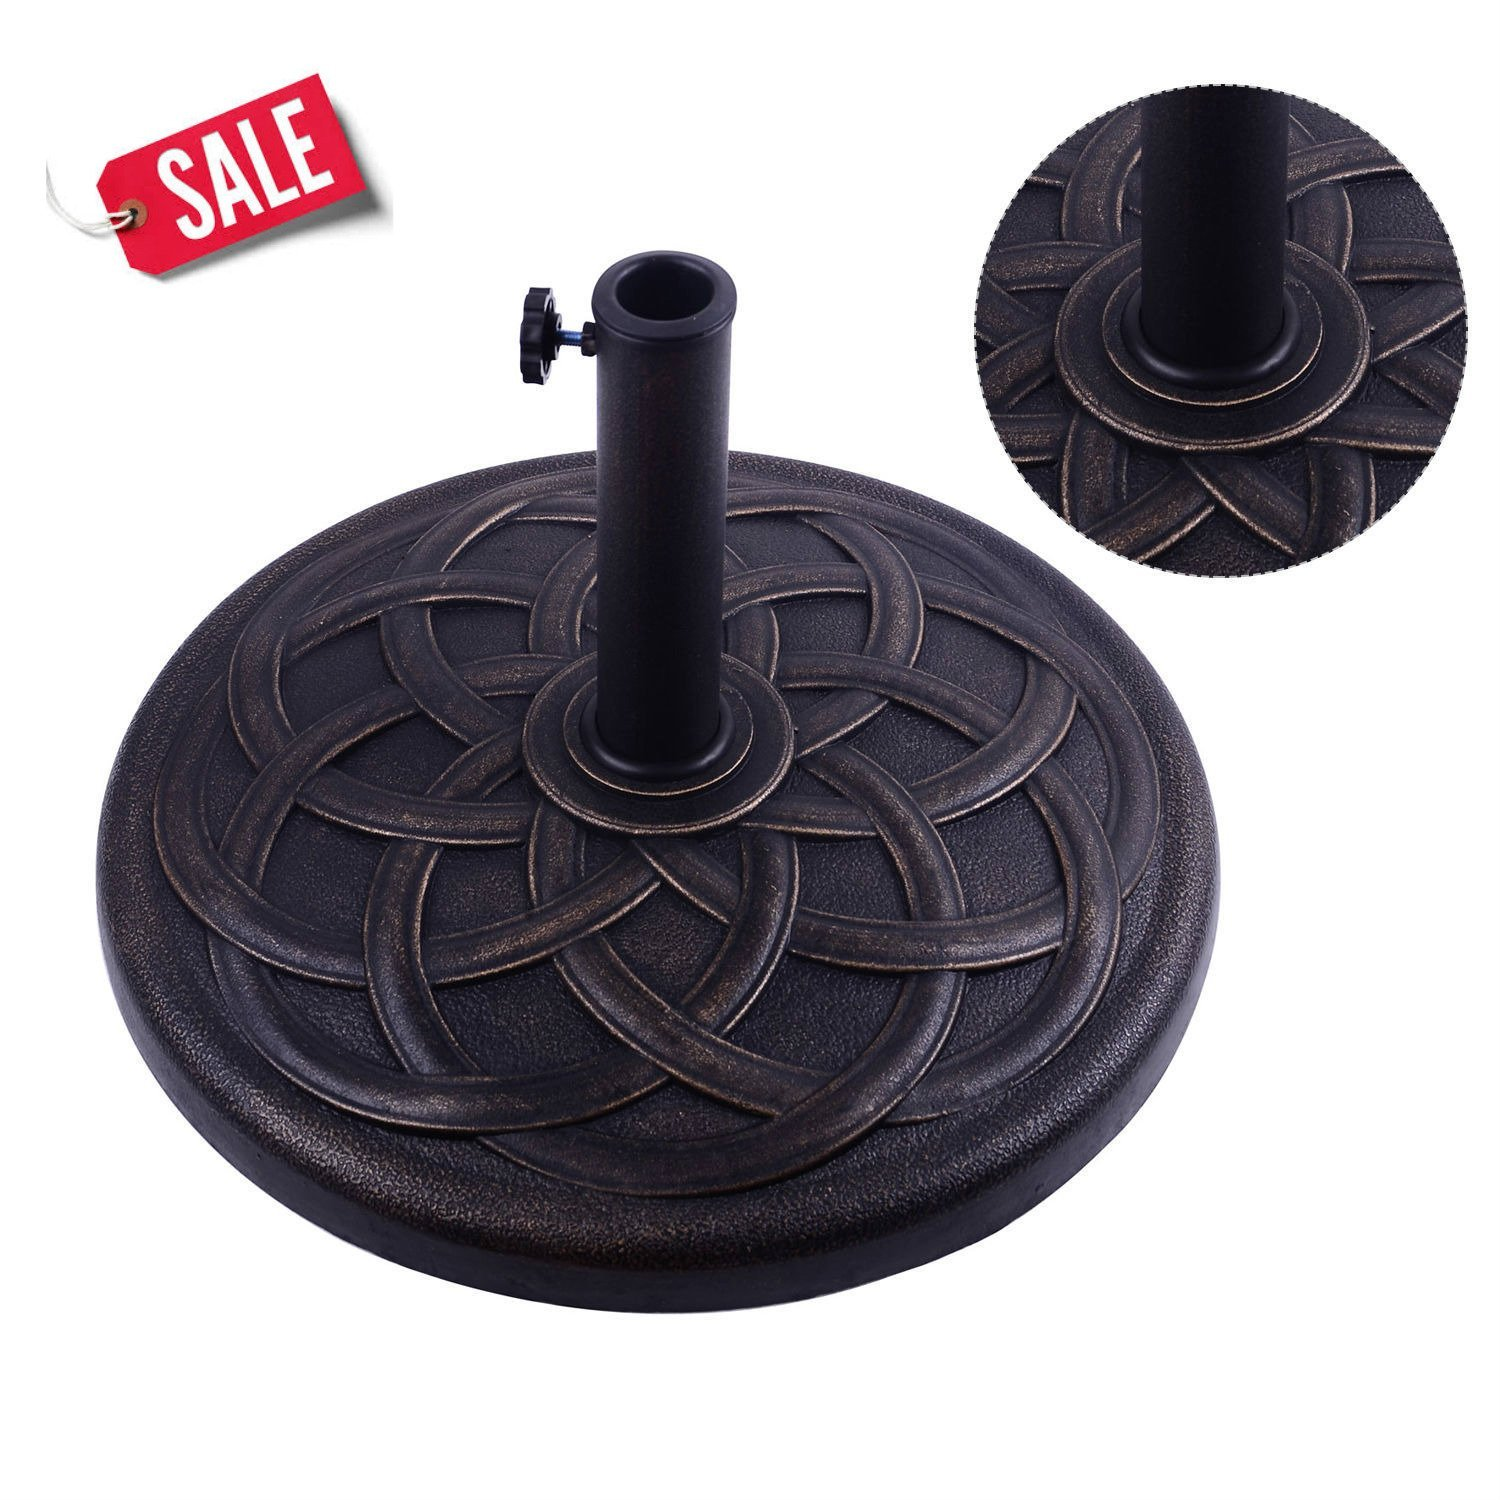 Cheap Heavy Umbrella Base Stands Find Heavy Umbrella Base Stands